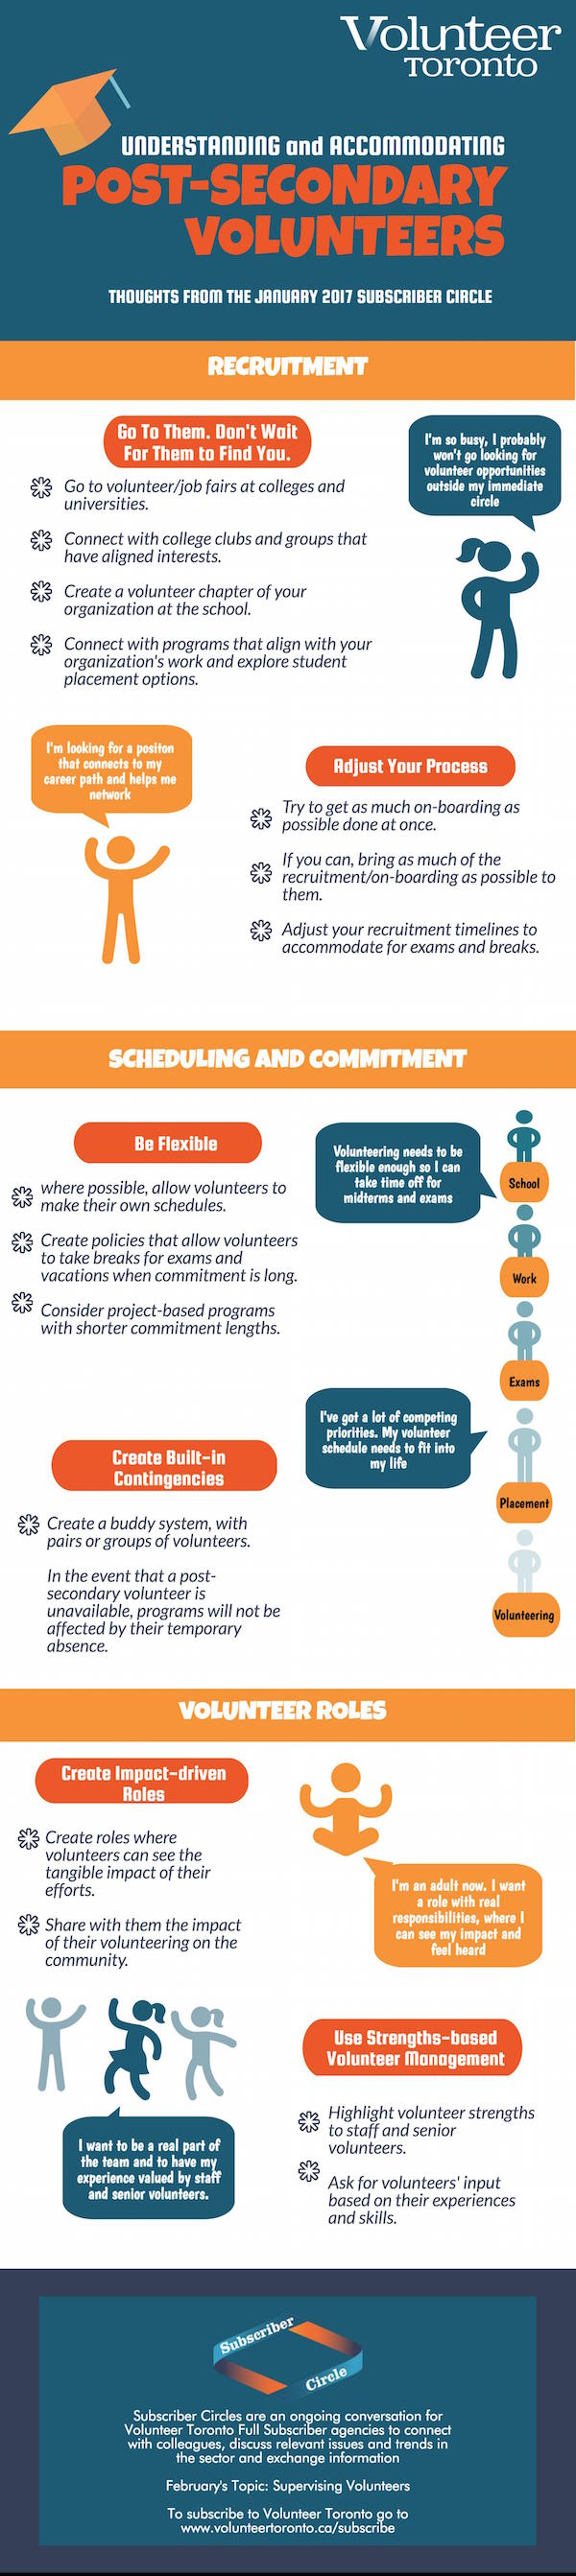 Infographic: Understanding and Accommodating Post-Secondary Student Volunteers